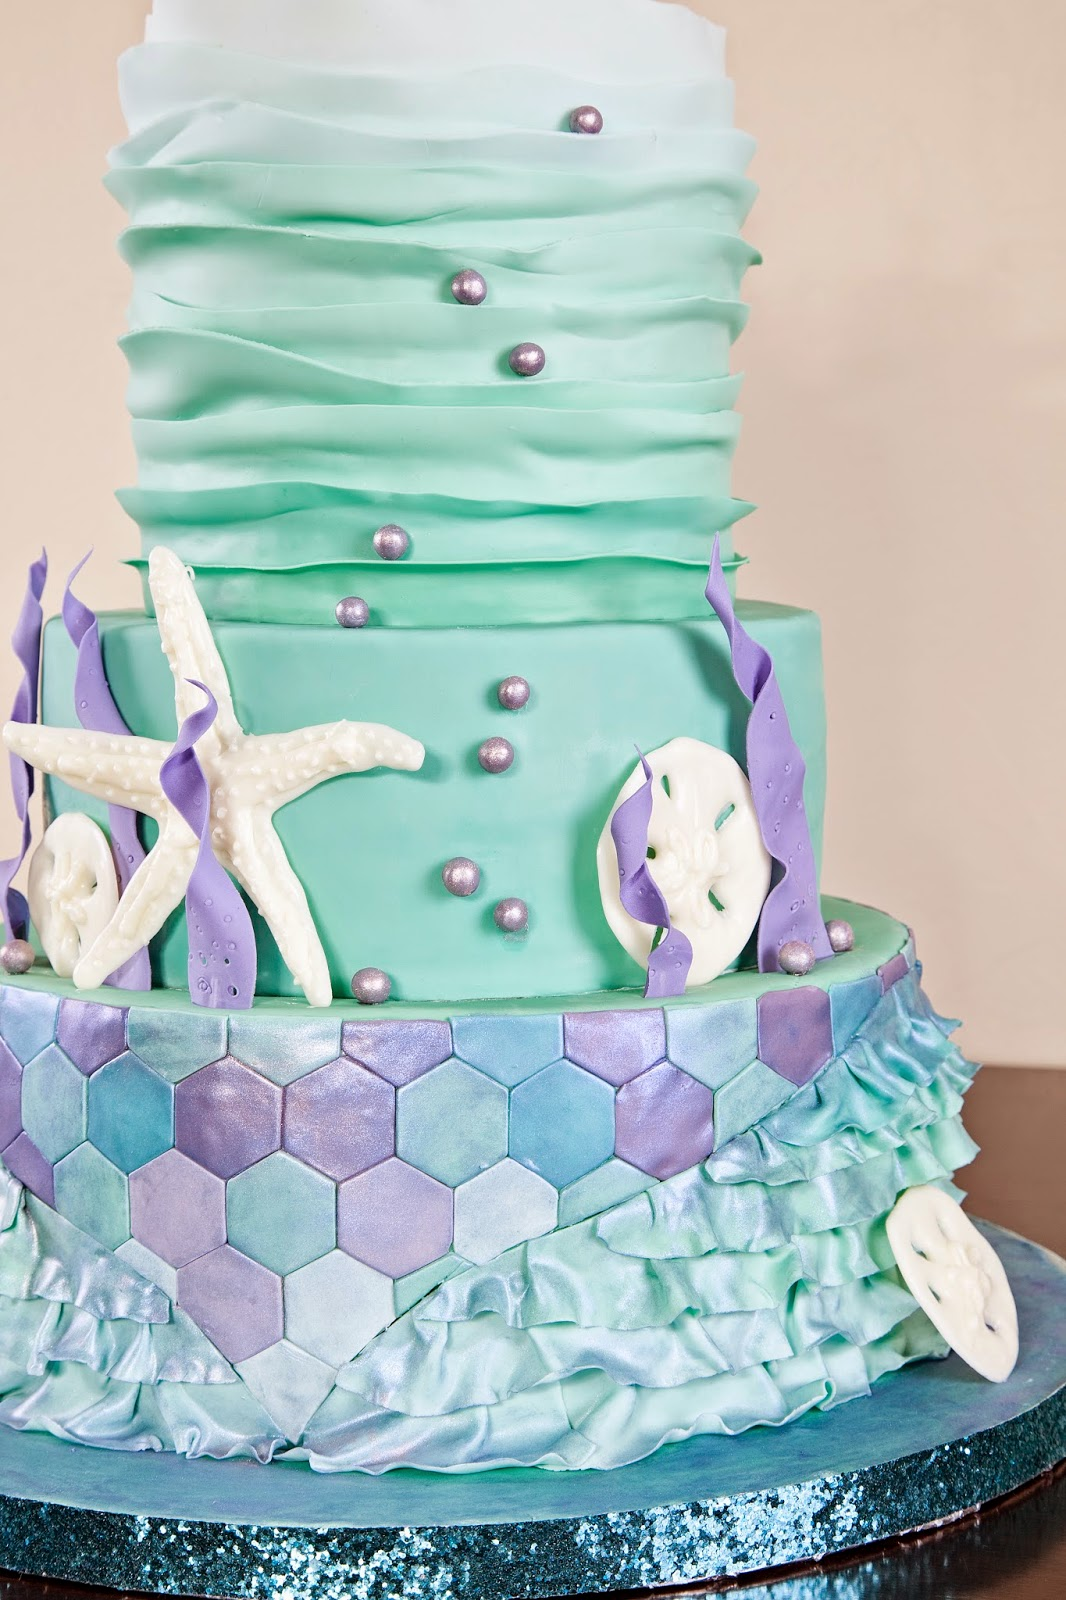 Delectable Cakes Pearly Purple And Teal Mermaid Cake